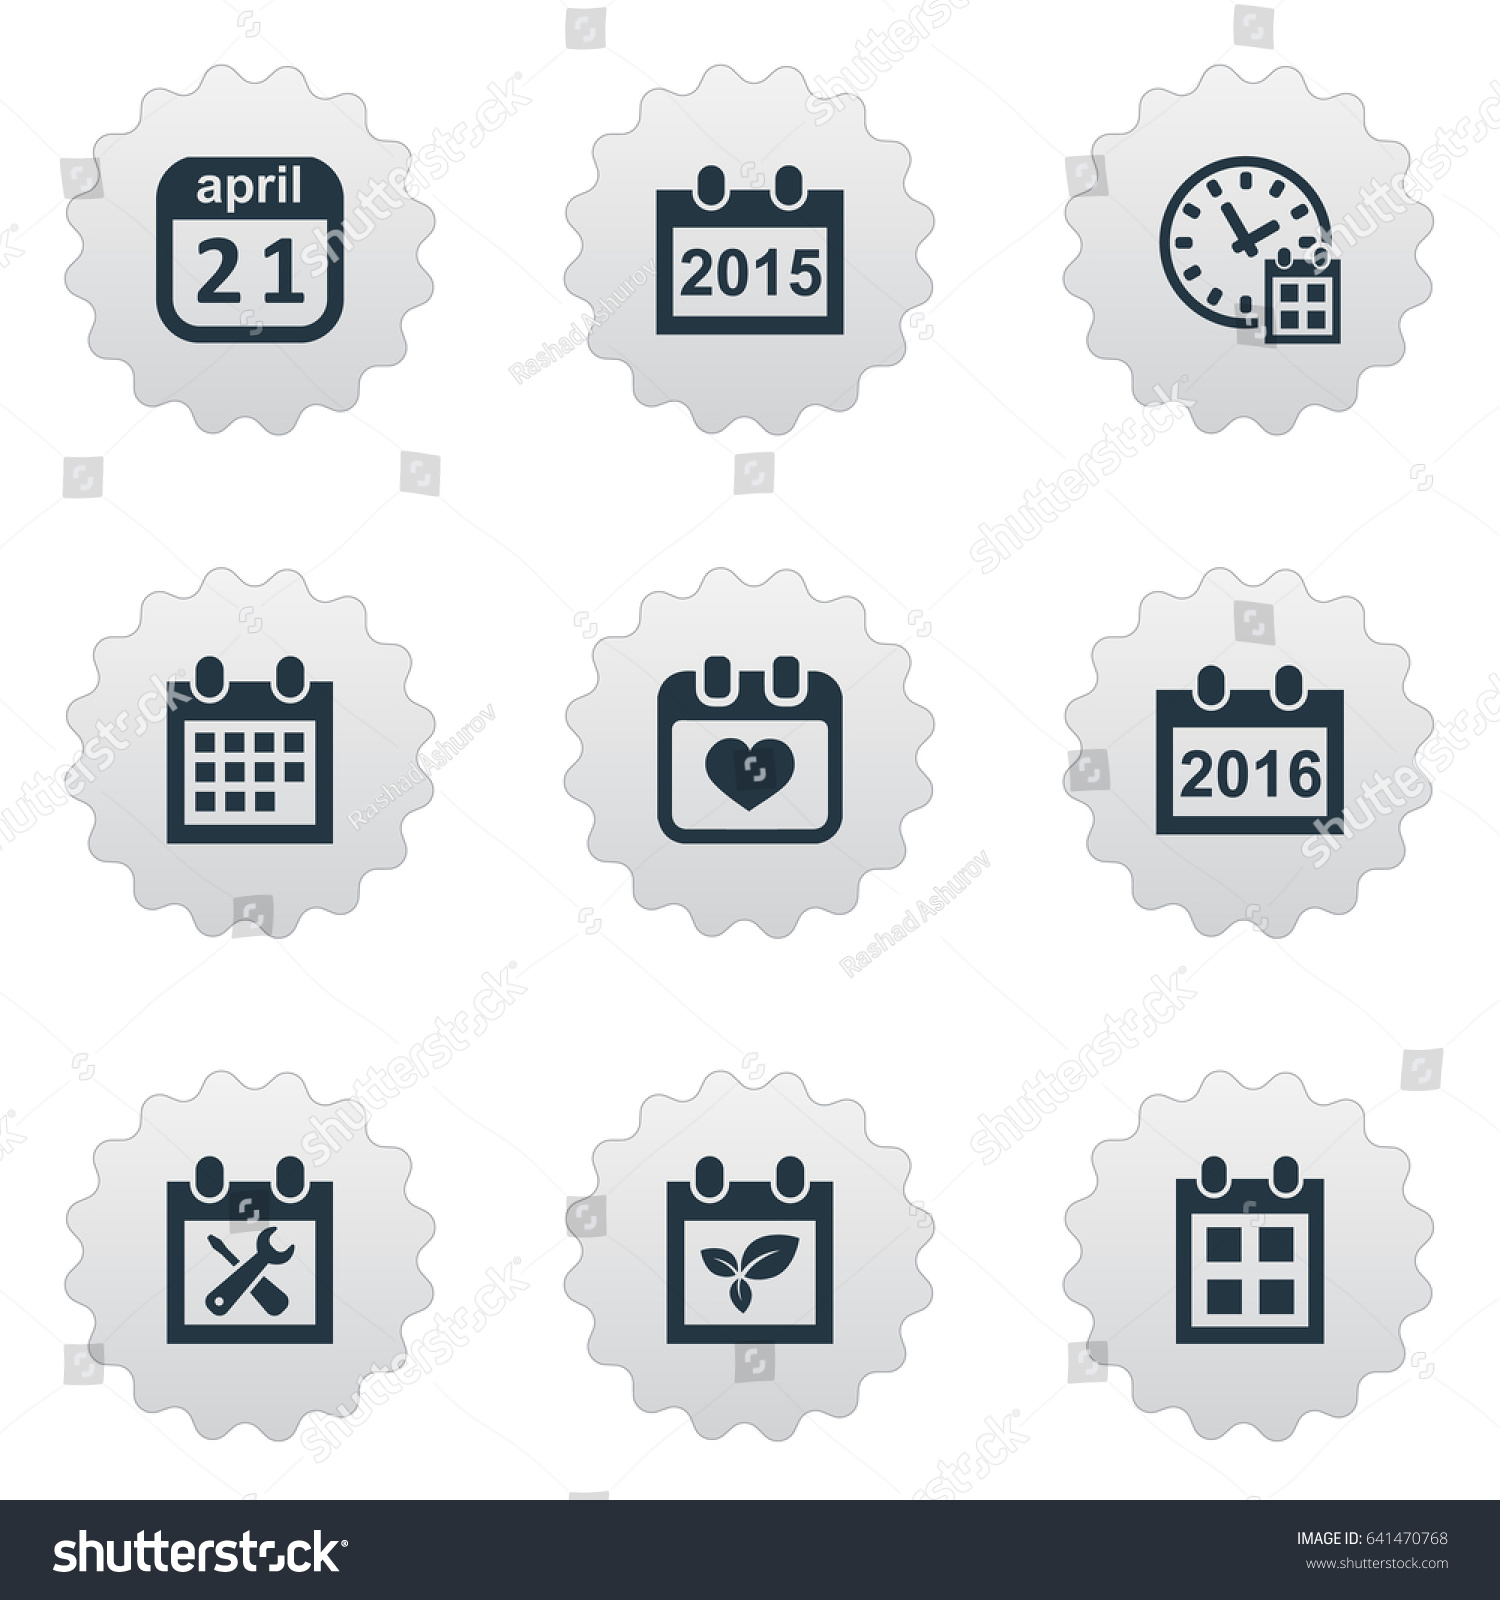 Vector Illustration Set Of Simple Calendar Icons Elements Annual Reminder 2016 And